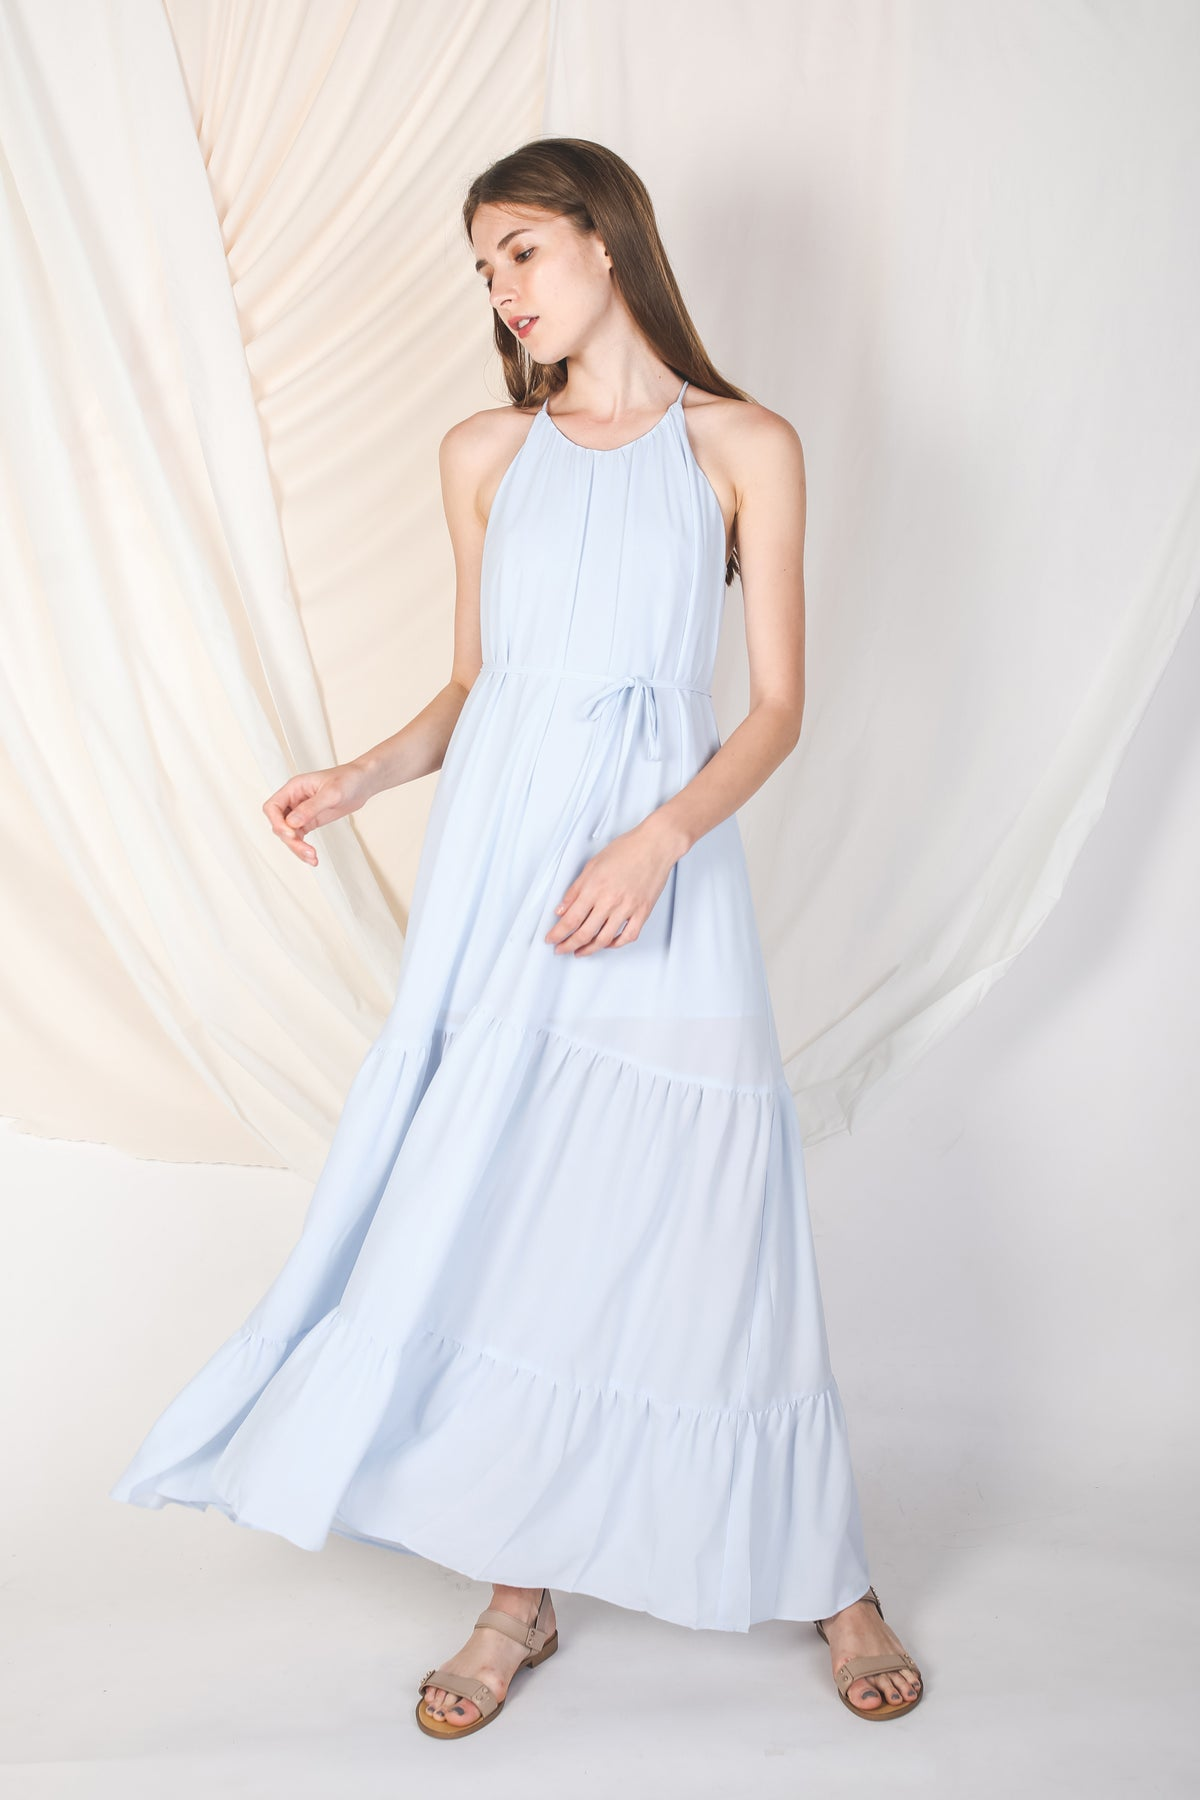 Tiered A-Line Dress In Summer Blue